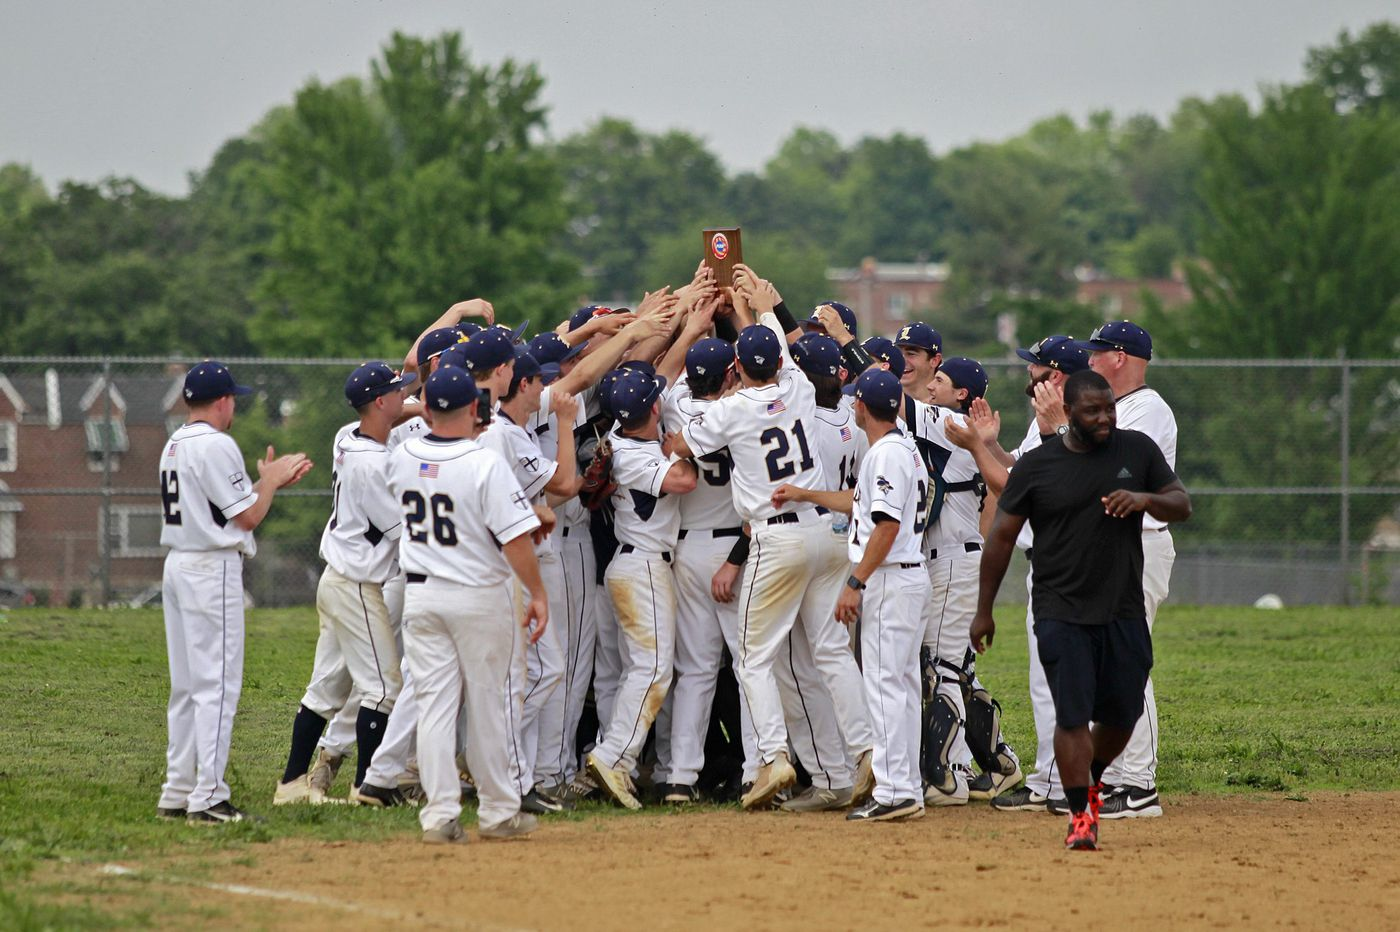 La Salle hammers Frankford, claims PIAA District 12 Class 6A baseball title